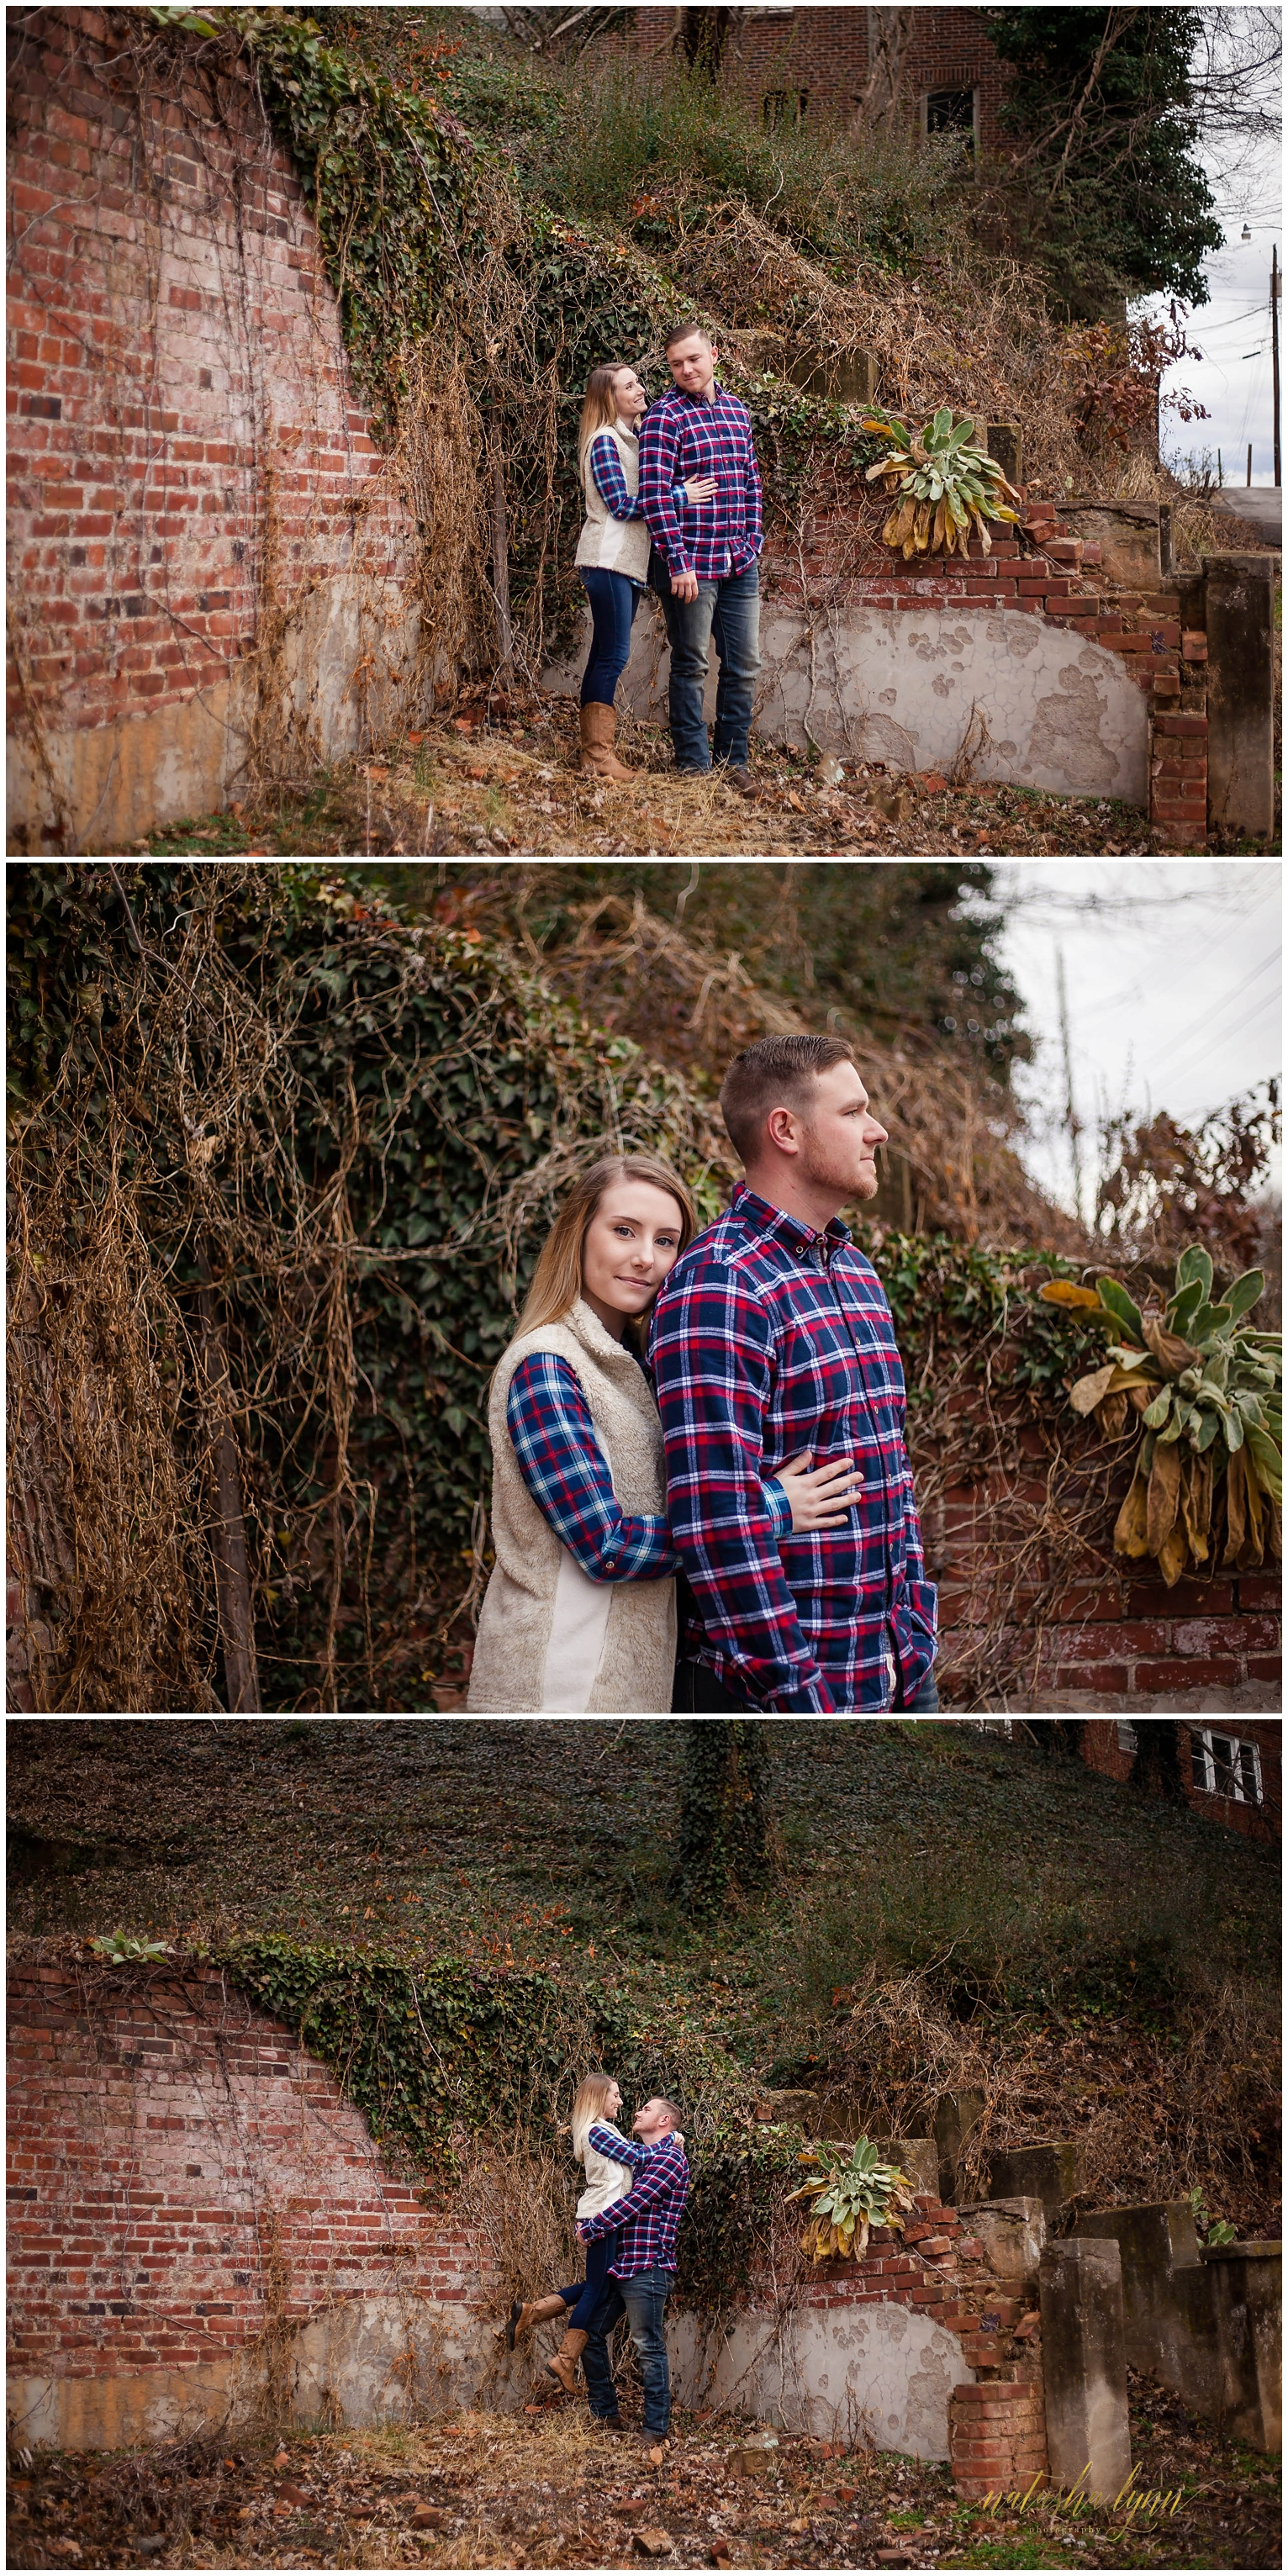 Wilkes+County+Engagement+Photographer_0010.jpg